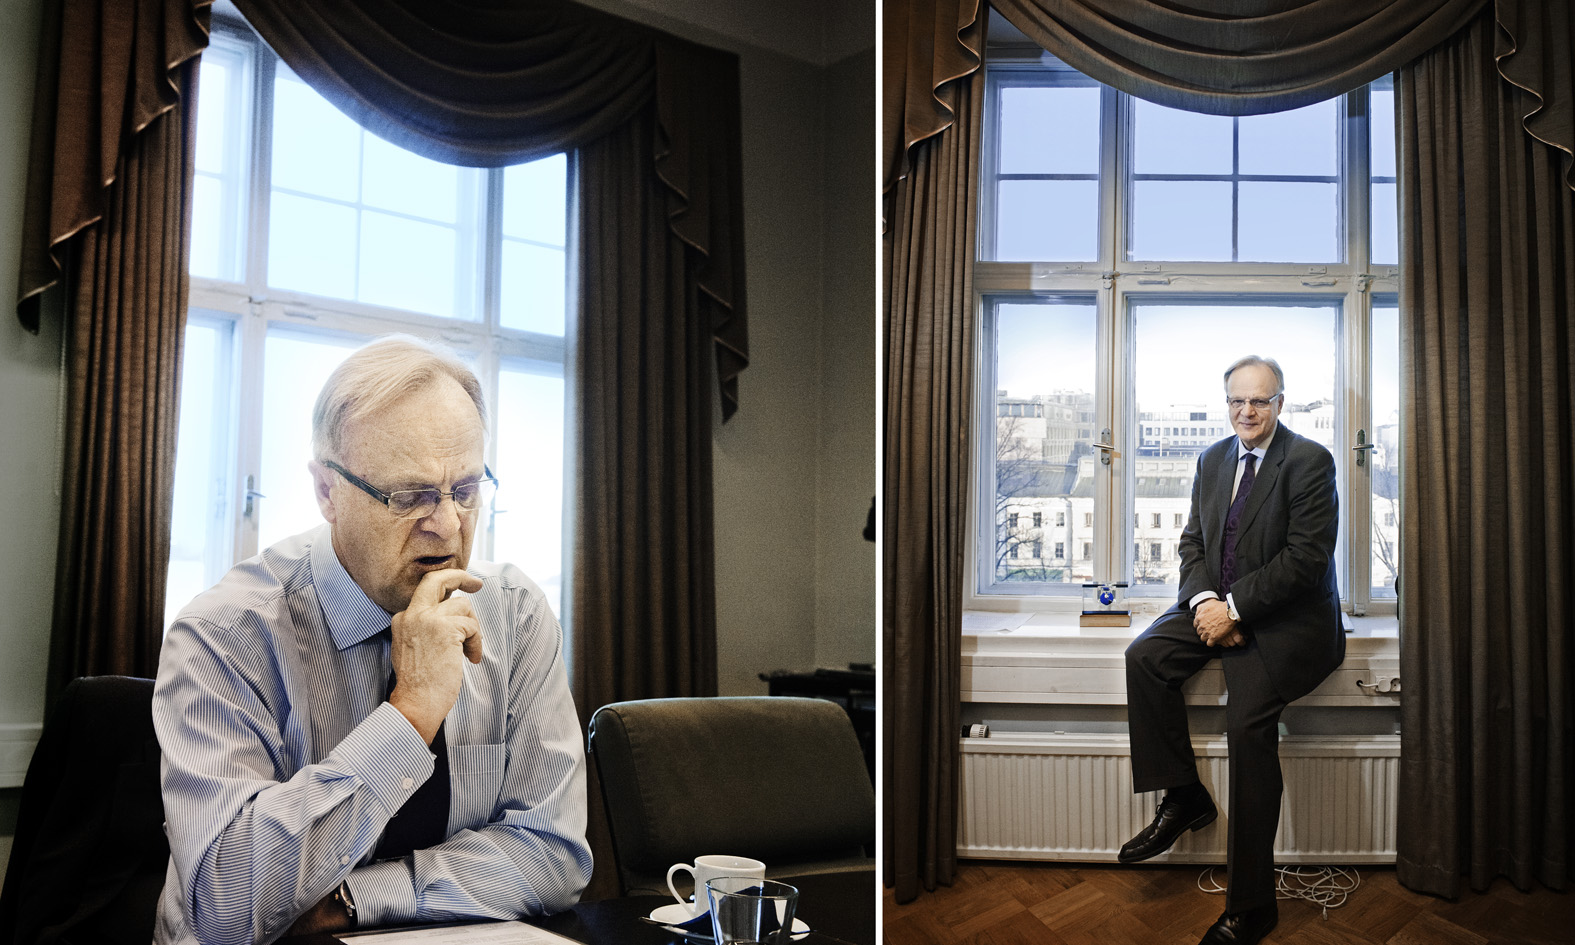 Minister of Labour Lauri Ihalainen: Improved competence will safeguard Finland's future